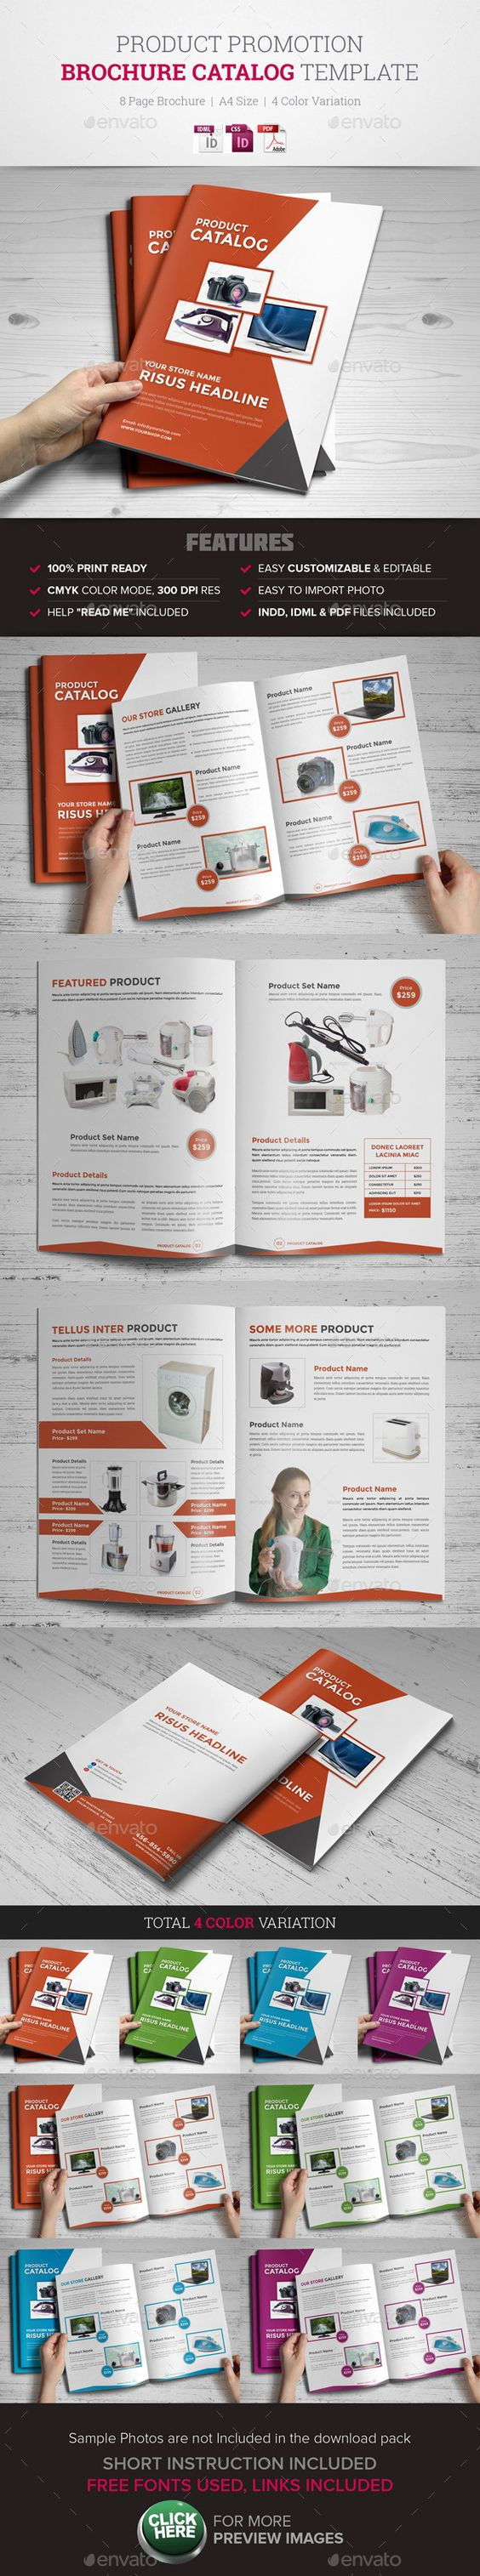 Product promotion catalog indesign template products promotion and brochures for Catalogue templates indesign